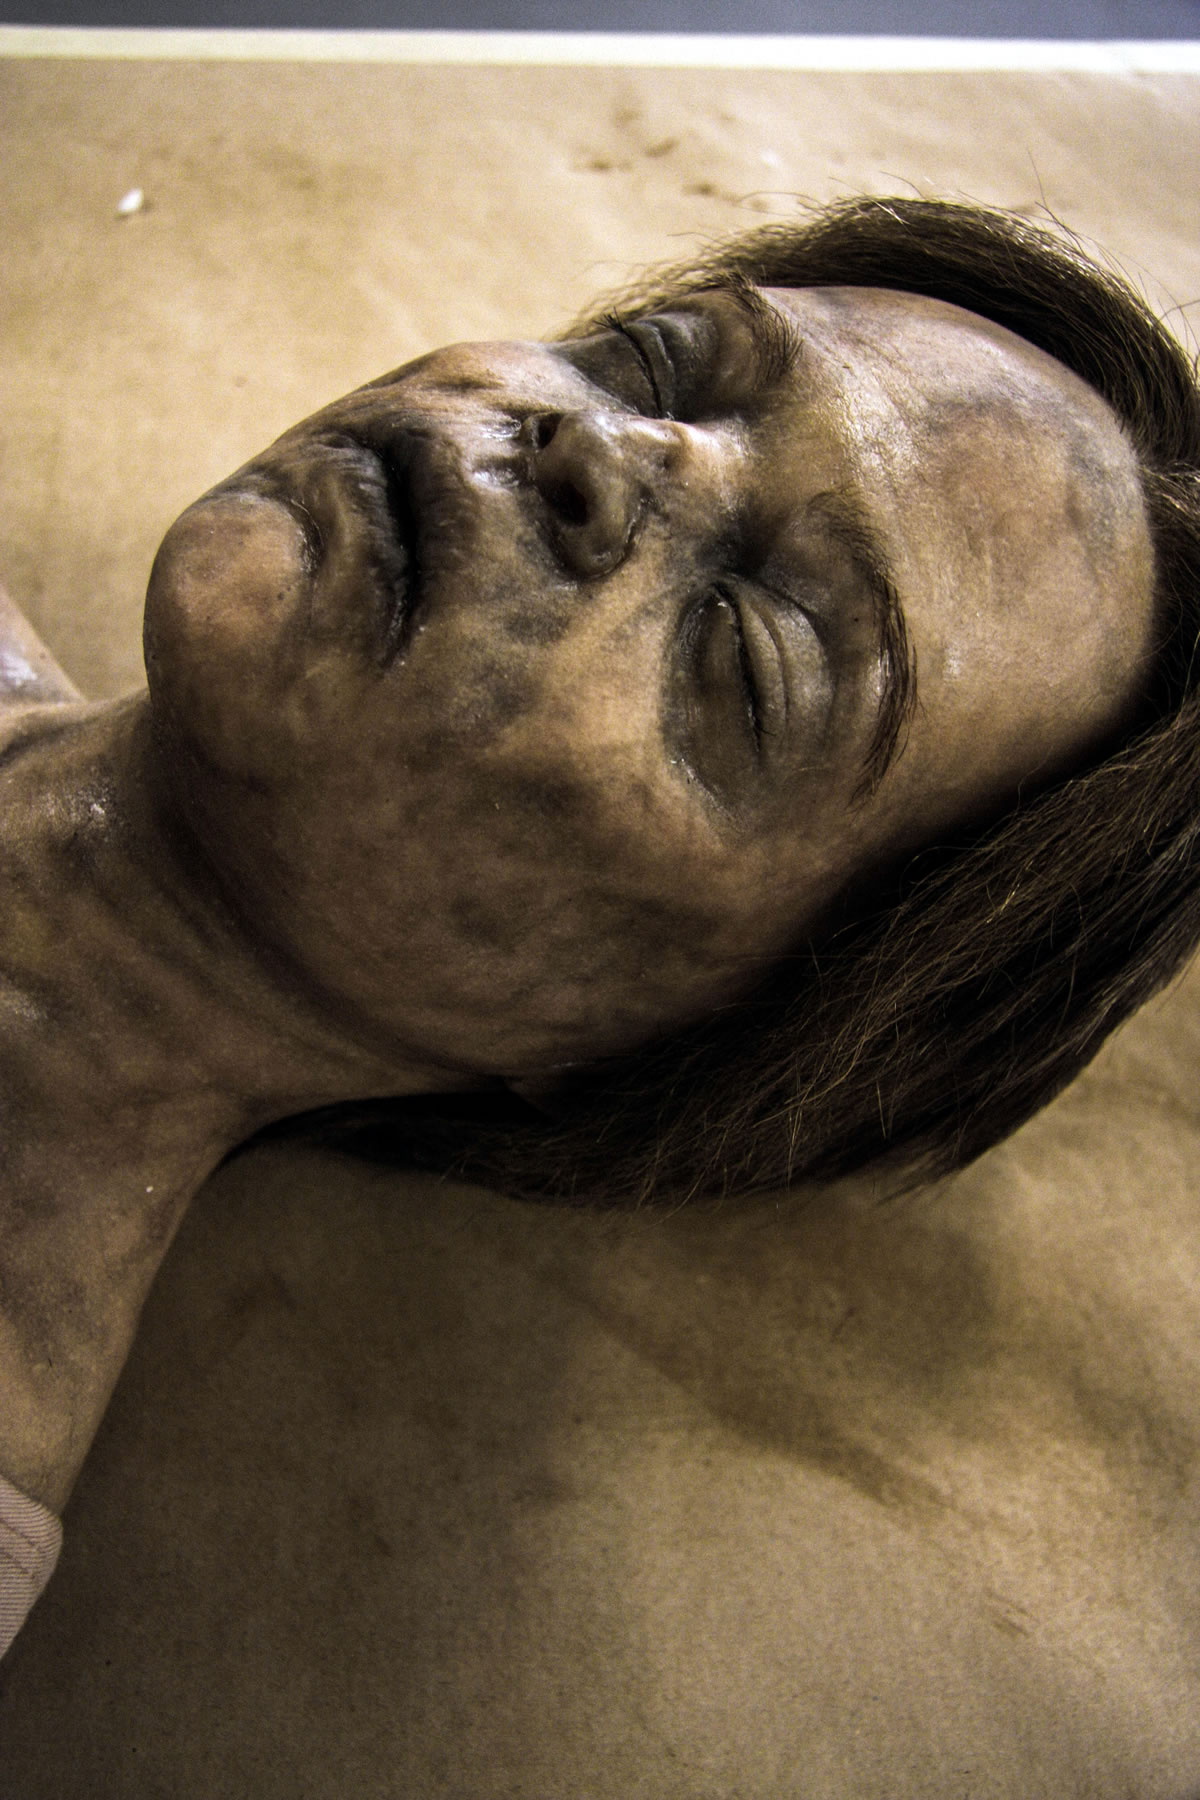 Boy corpse from 'House M.D'